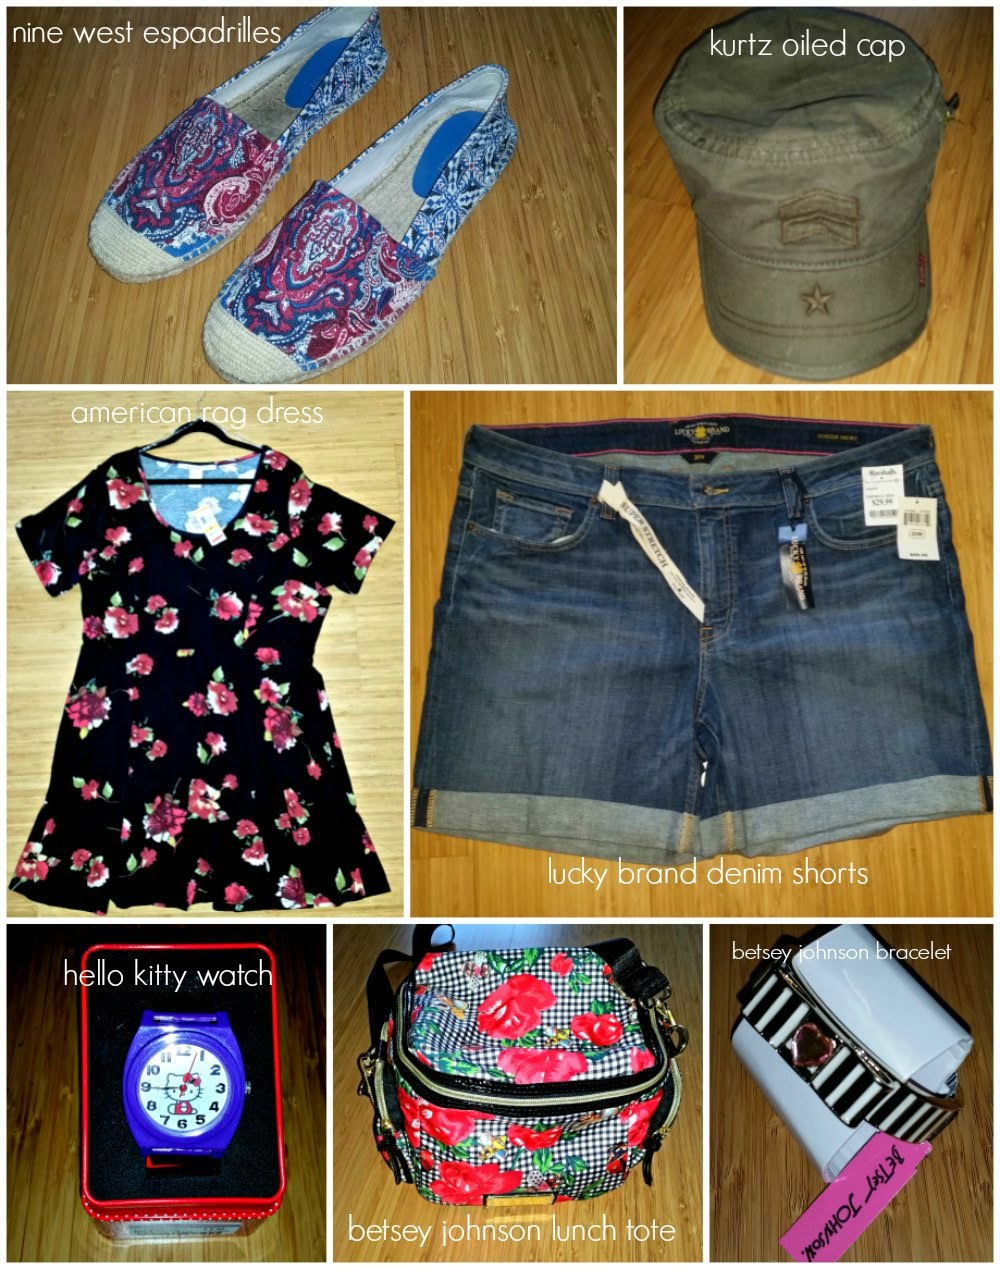 nine west, kurtz,american rag, lucky brand, hello kitty, betsey johnson, shoes, lunch bag, plus size dress, denim shorts, watch